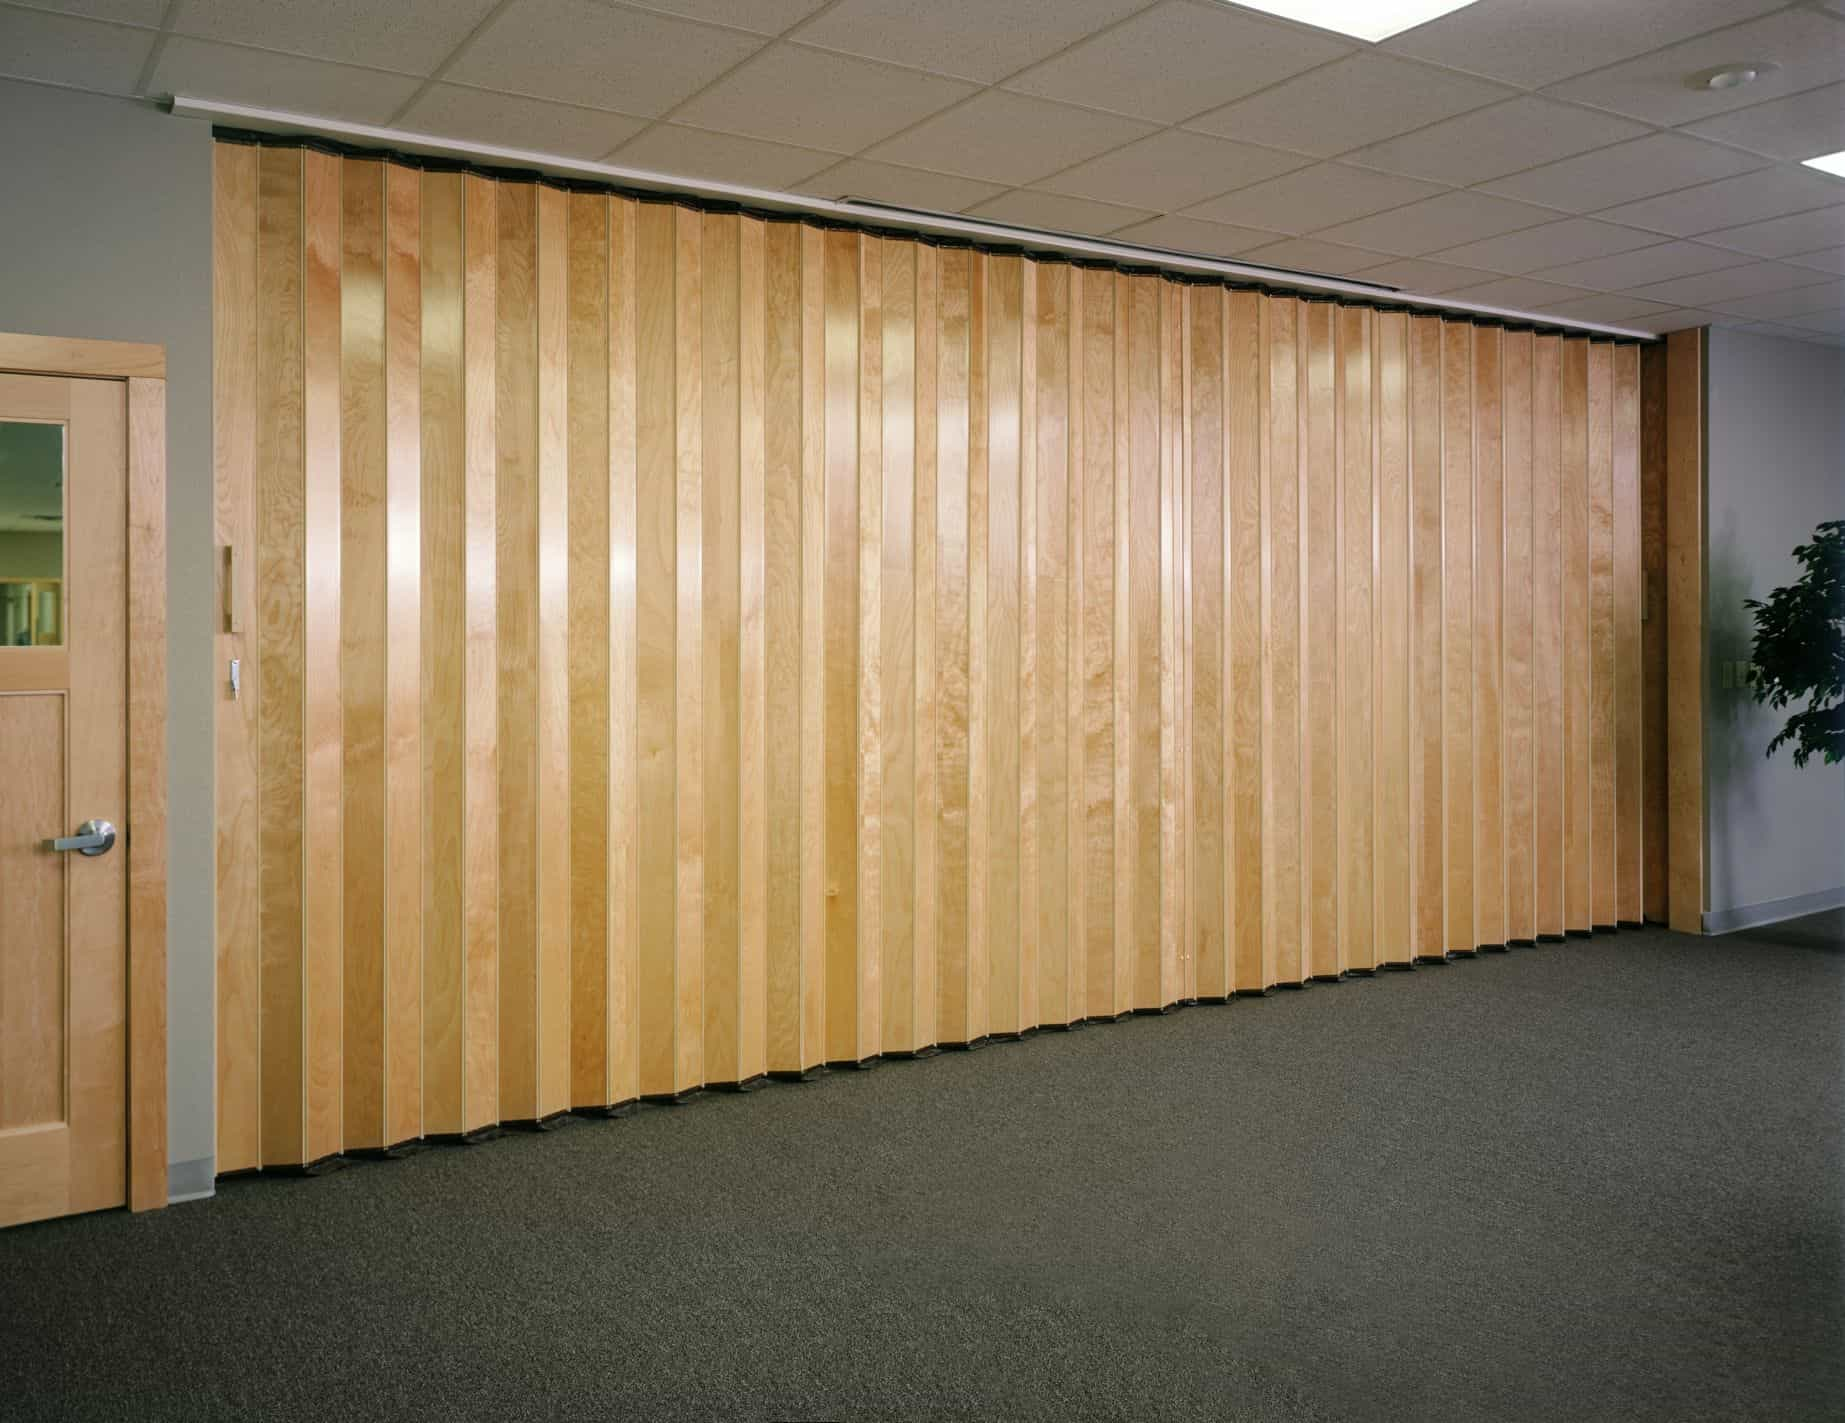 Folding Door Sound : Woodfold series acoustic accordion doors canuck